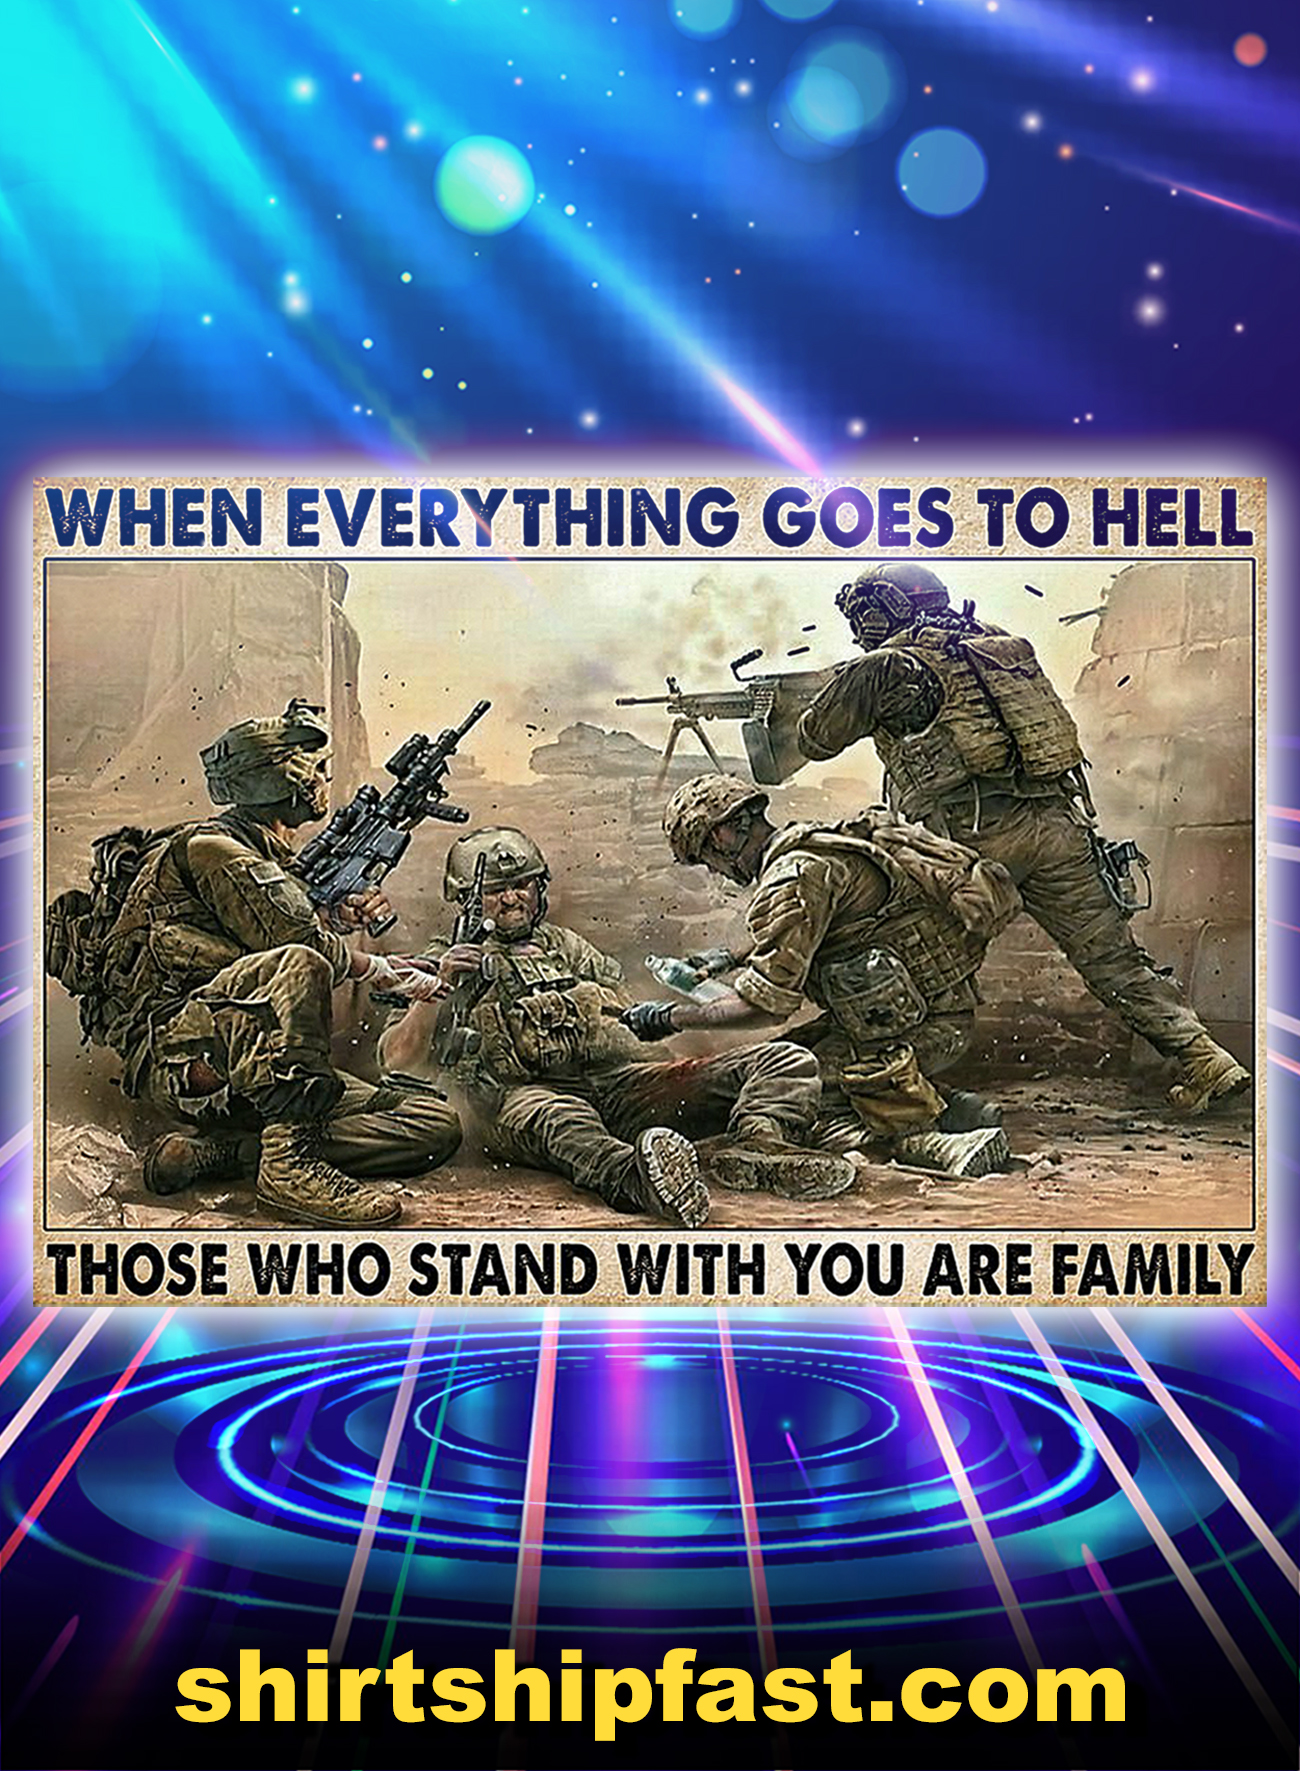 When everything goes to hell those who stand with you are family veteran poster - A1